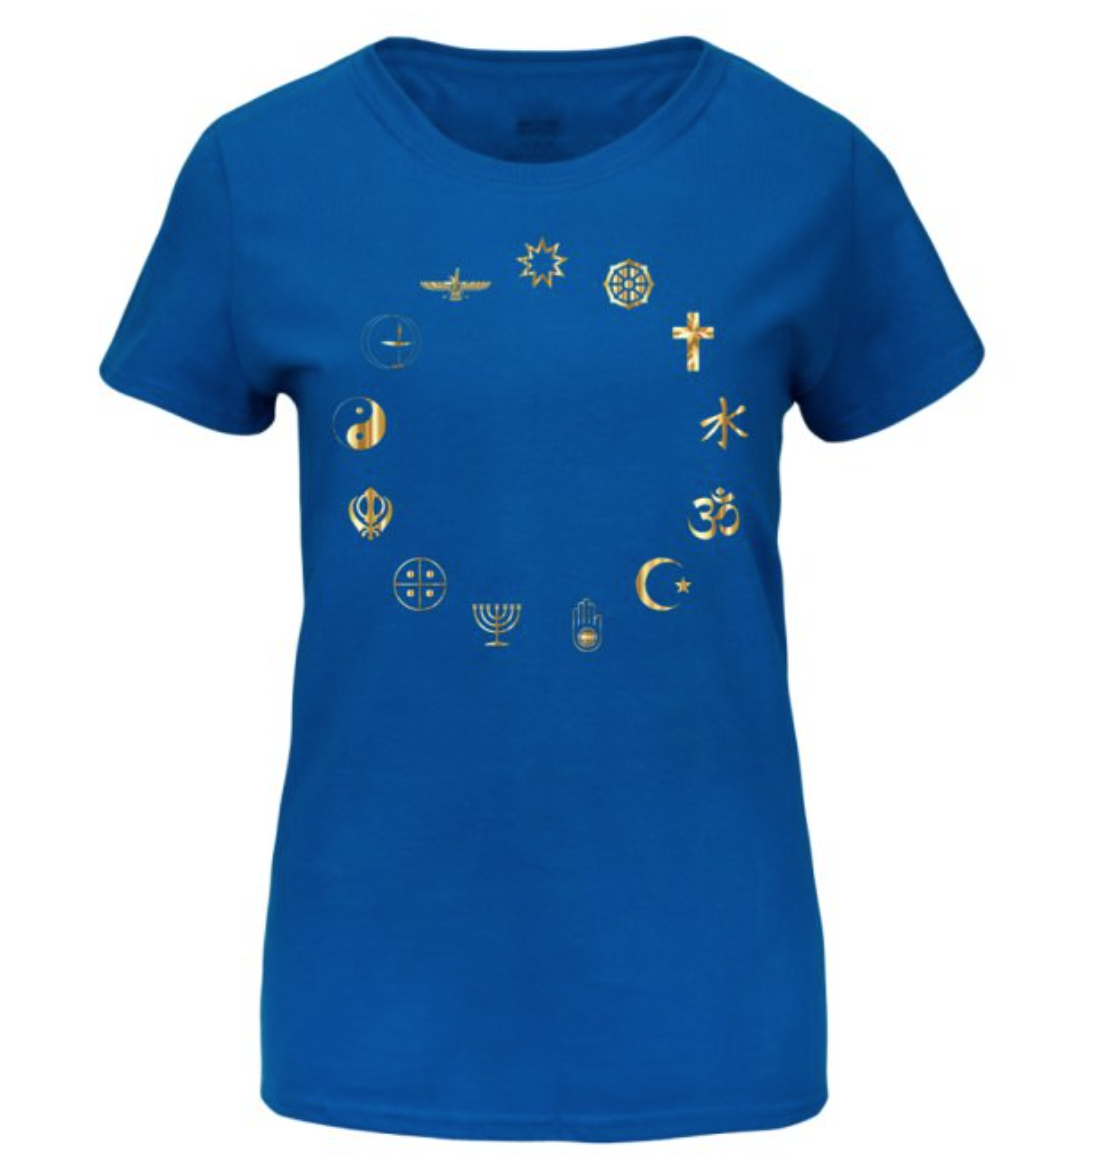 Equality Secular Symbols Women's Basic T-Shirt Large